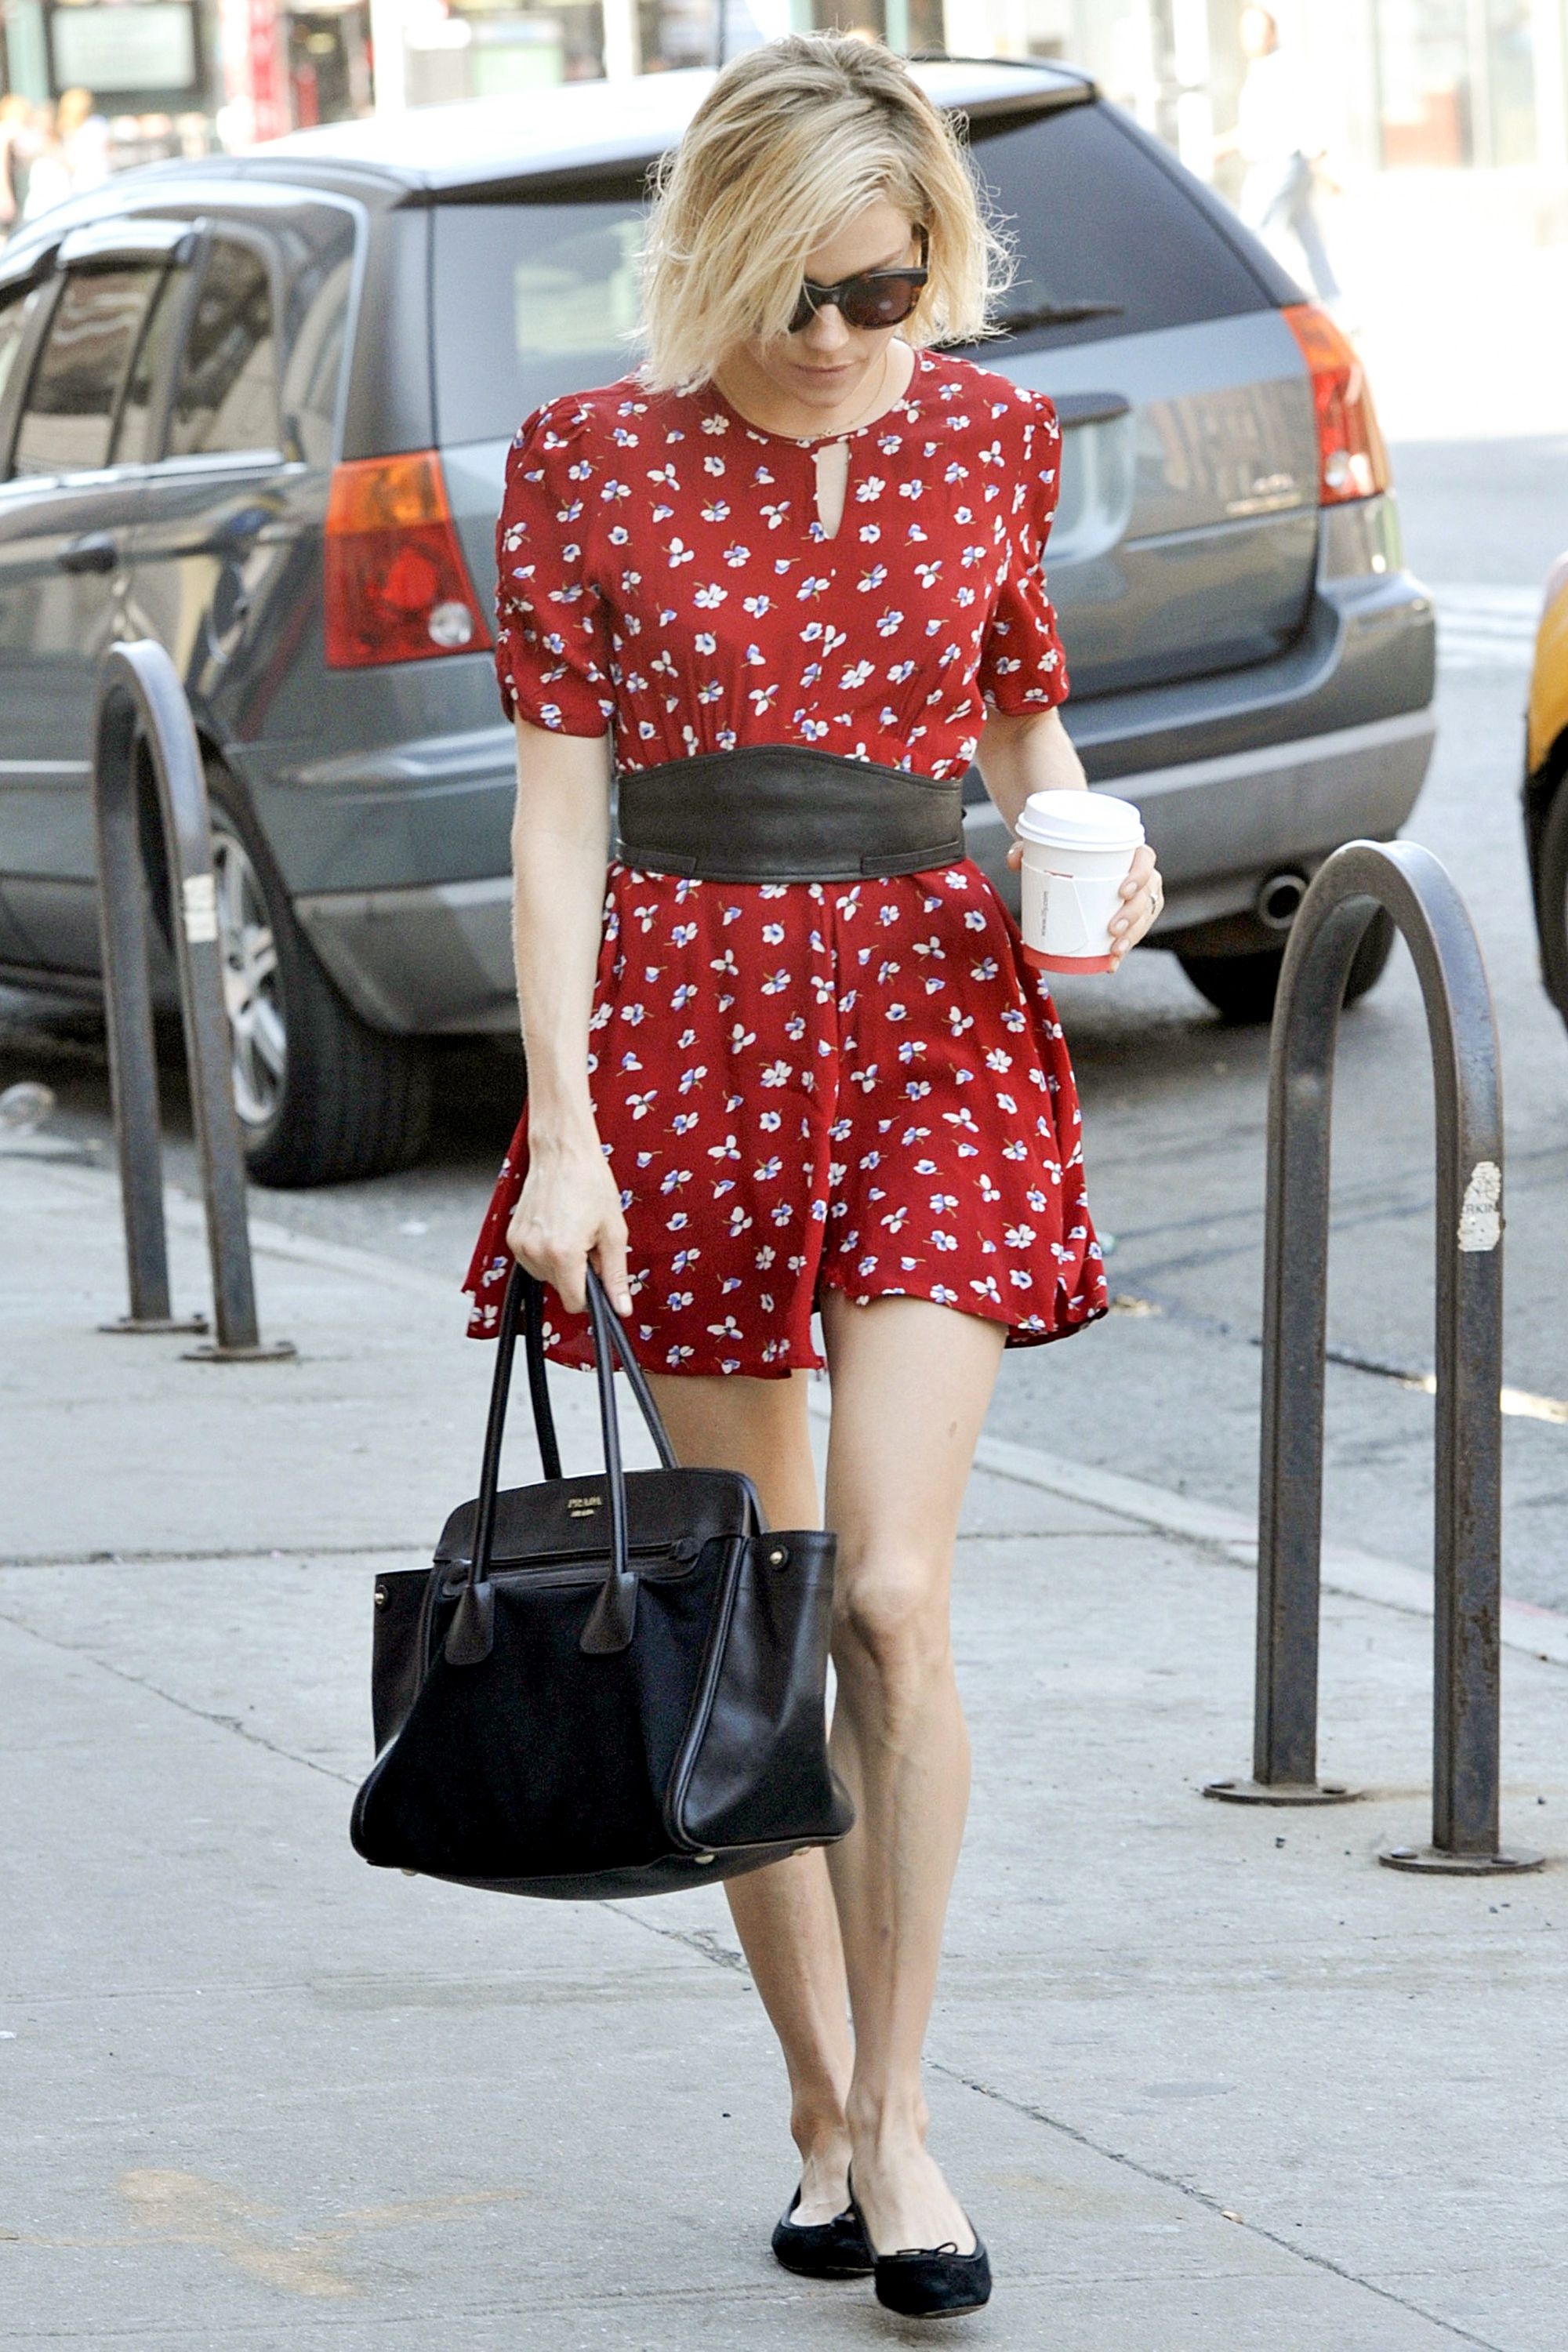 ***MANDATORY BYLINE TO READ INFPhoto.com ONLY***&lt&#x3B;BR/&gt&#x3B;&#xA&#x3B;Actress Sienna Miller wears a red floral print dress, which appears to have a ripped hem, as she walks in the West Village section of New York City.&#xA&#x3B;&lt&#x3B;P&gt&#x3B;&#xA&#x3B;Pictured: Sienna Miller&#xA&#x3B;&lt&#x3B;B&gt&#x3B;Ref: SPL1016602  040515  &lt&#x3B;/B&gt&#x3B;&lt&#x3B;BR/&gt&#x3B;&#xA&#x3B;Picture by: ACE/INFphoto.com&lt&#x3B;BR/&gt&#x3B;&#xA&#x3B;&lt&#x3B;/P&gt&#x3B;&lt&#x3B;P&gt&#x3B;&#xA&#x3B;